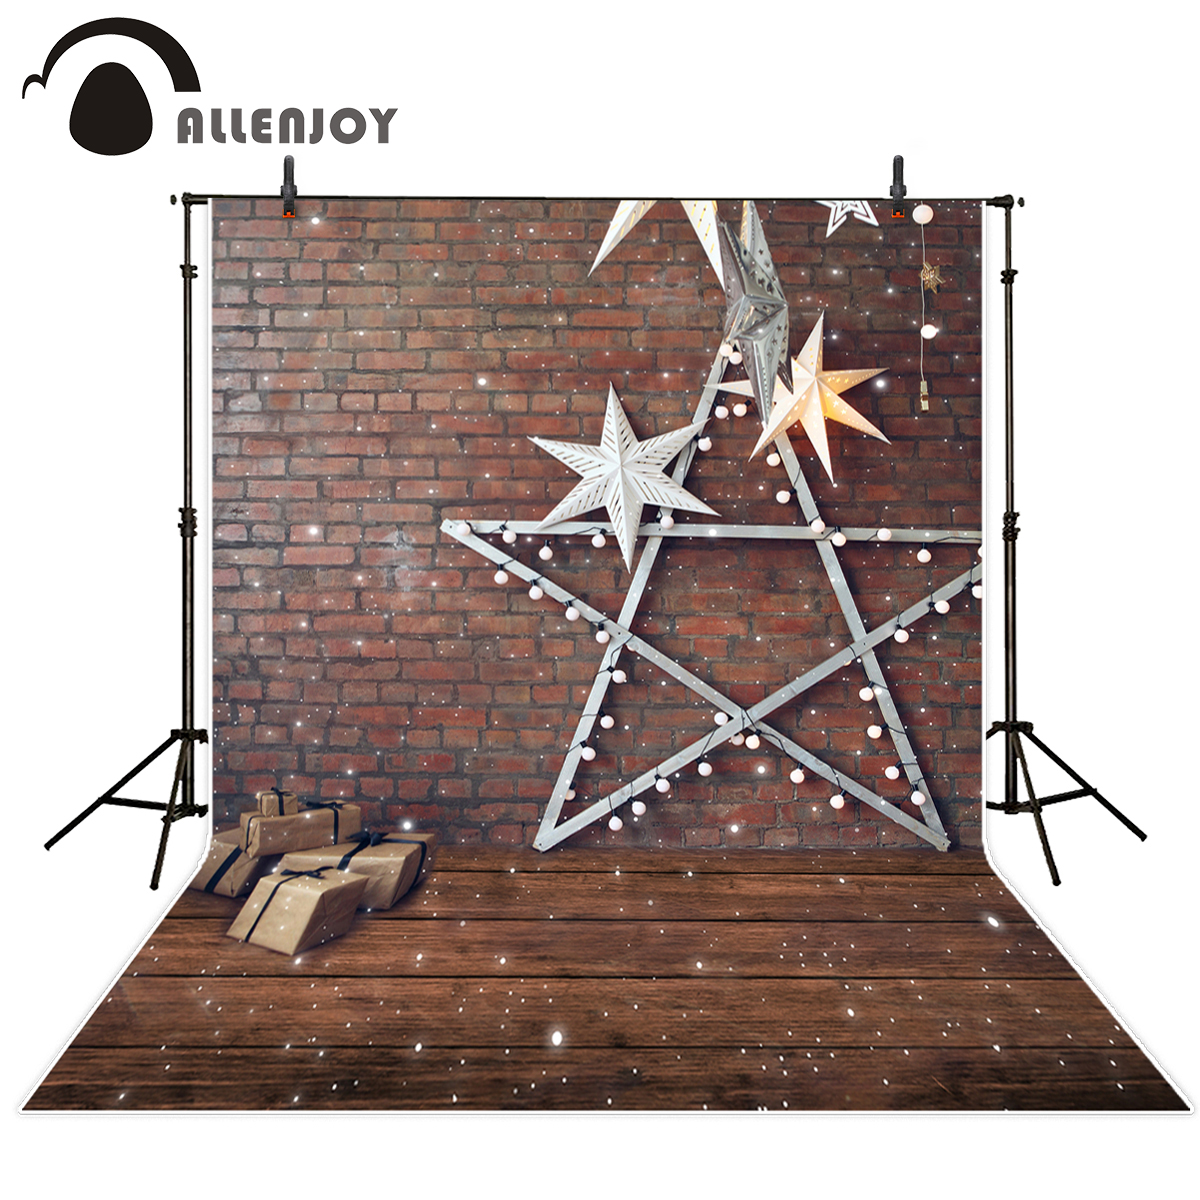 Allenjoy photography backdrops red brick wall snowflake star decoration wood beautiful backgrounds for photo studio professional allenjoy photography backdrops neat wooden structure wooden wall wood brick wall backgrounds for photo studio